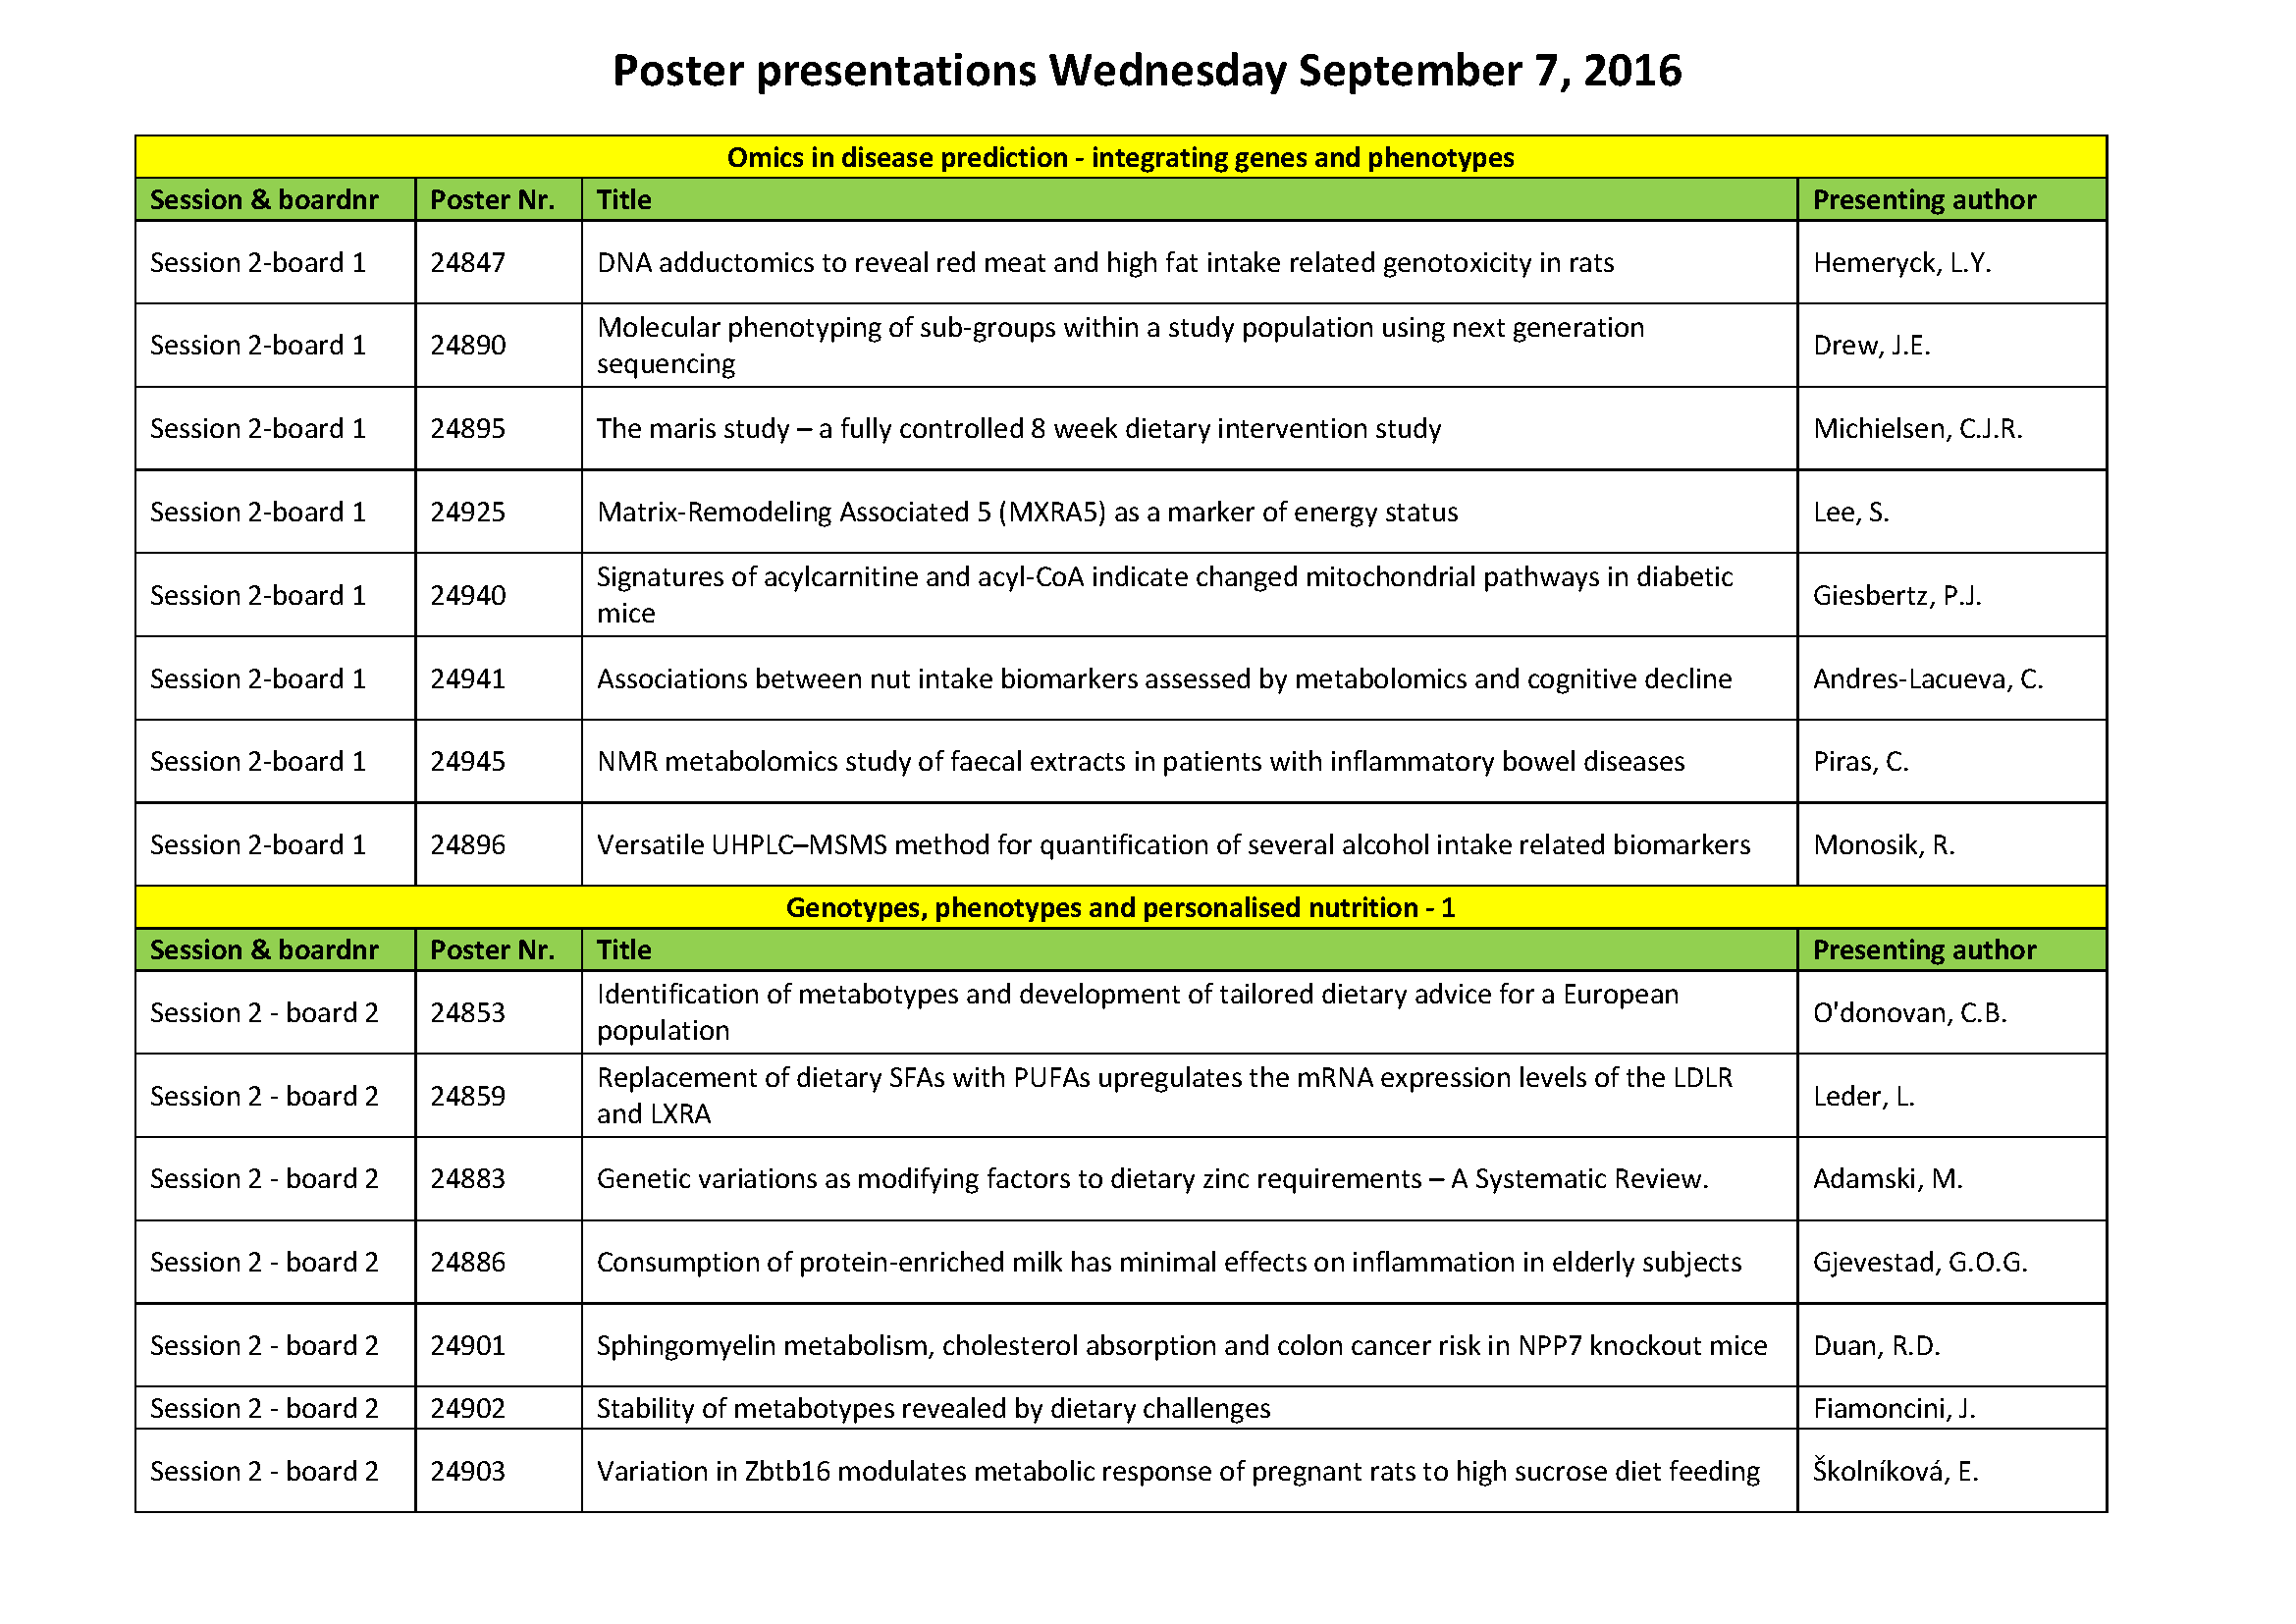 poster presentations wednesday 7 2016 wednesday page 1